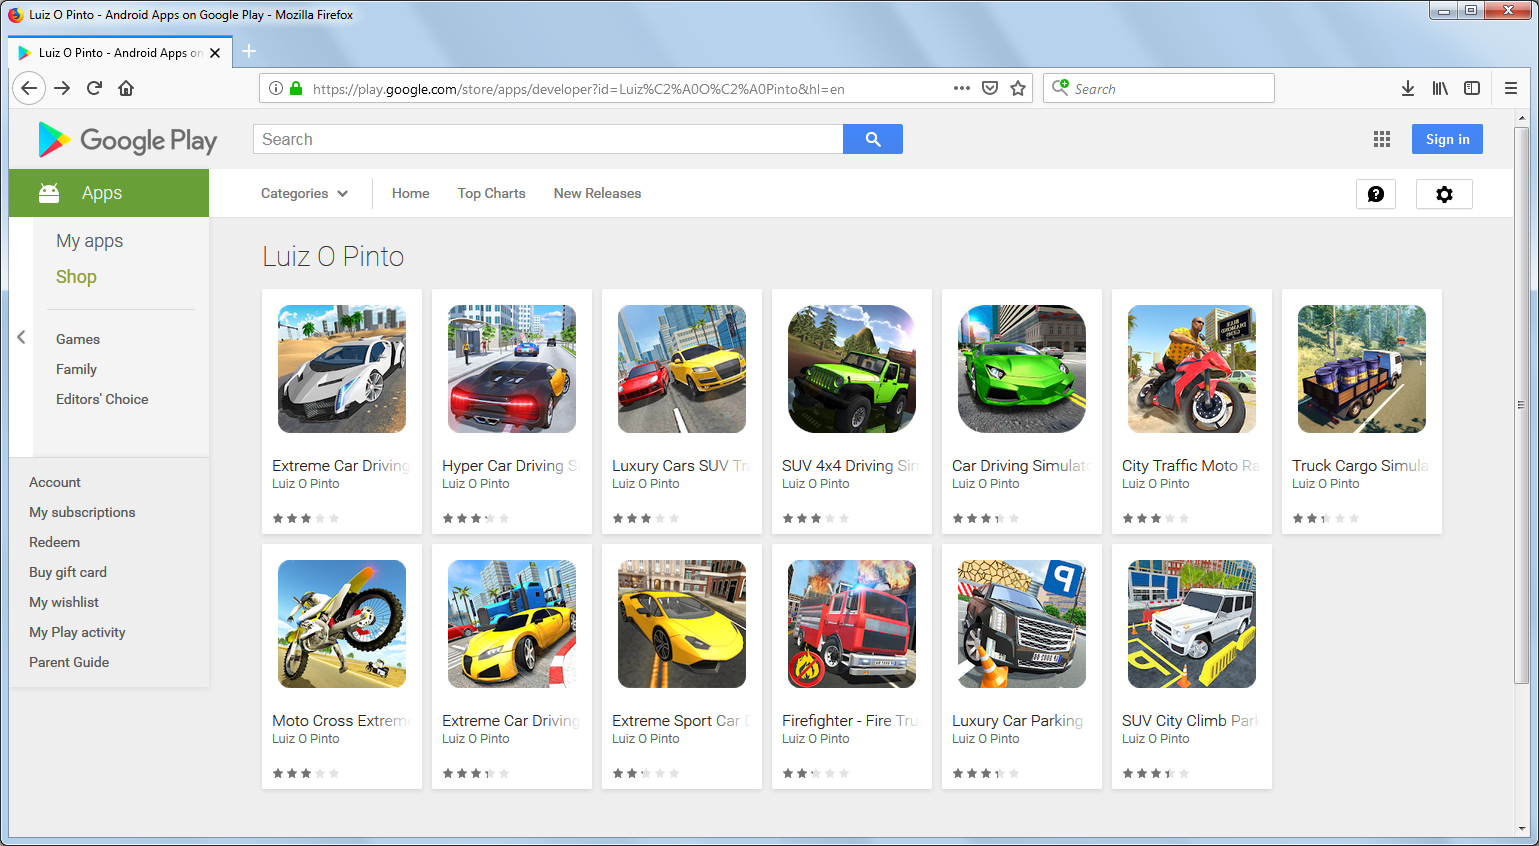 13 fraudulent apps into Google Play have been downloaded 560,000+ times